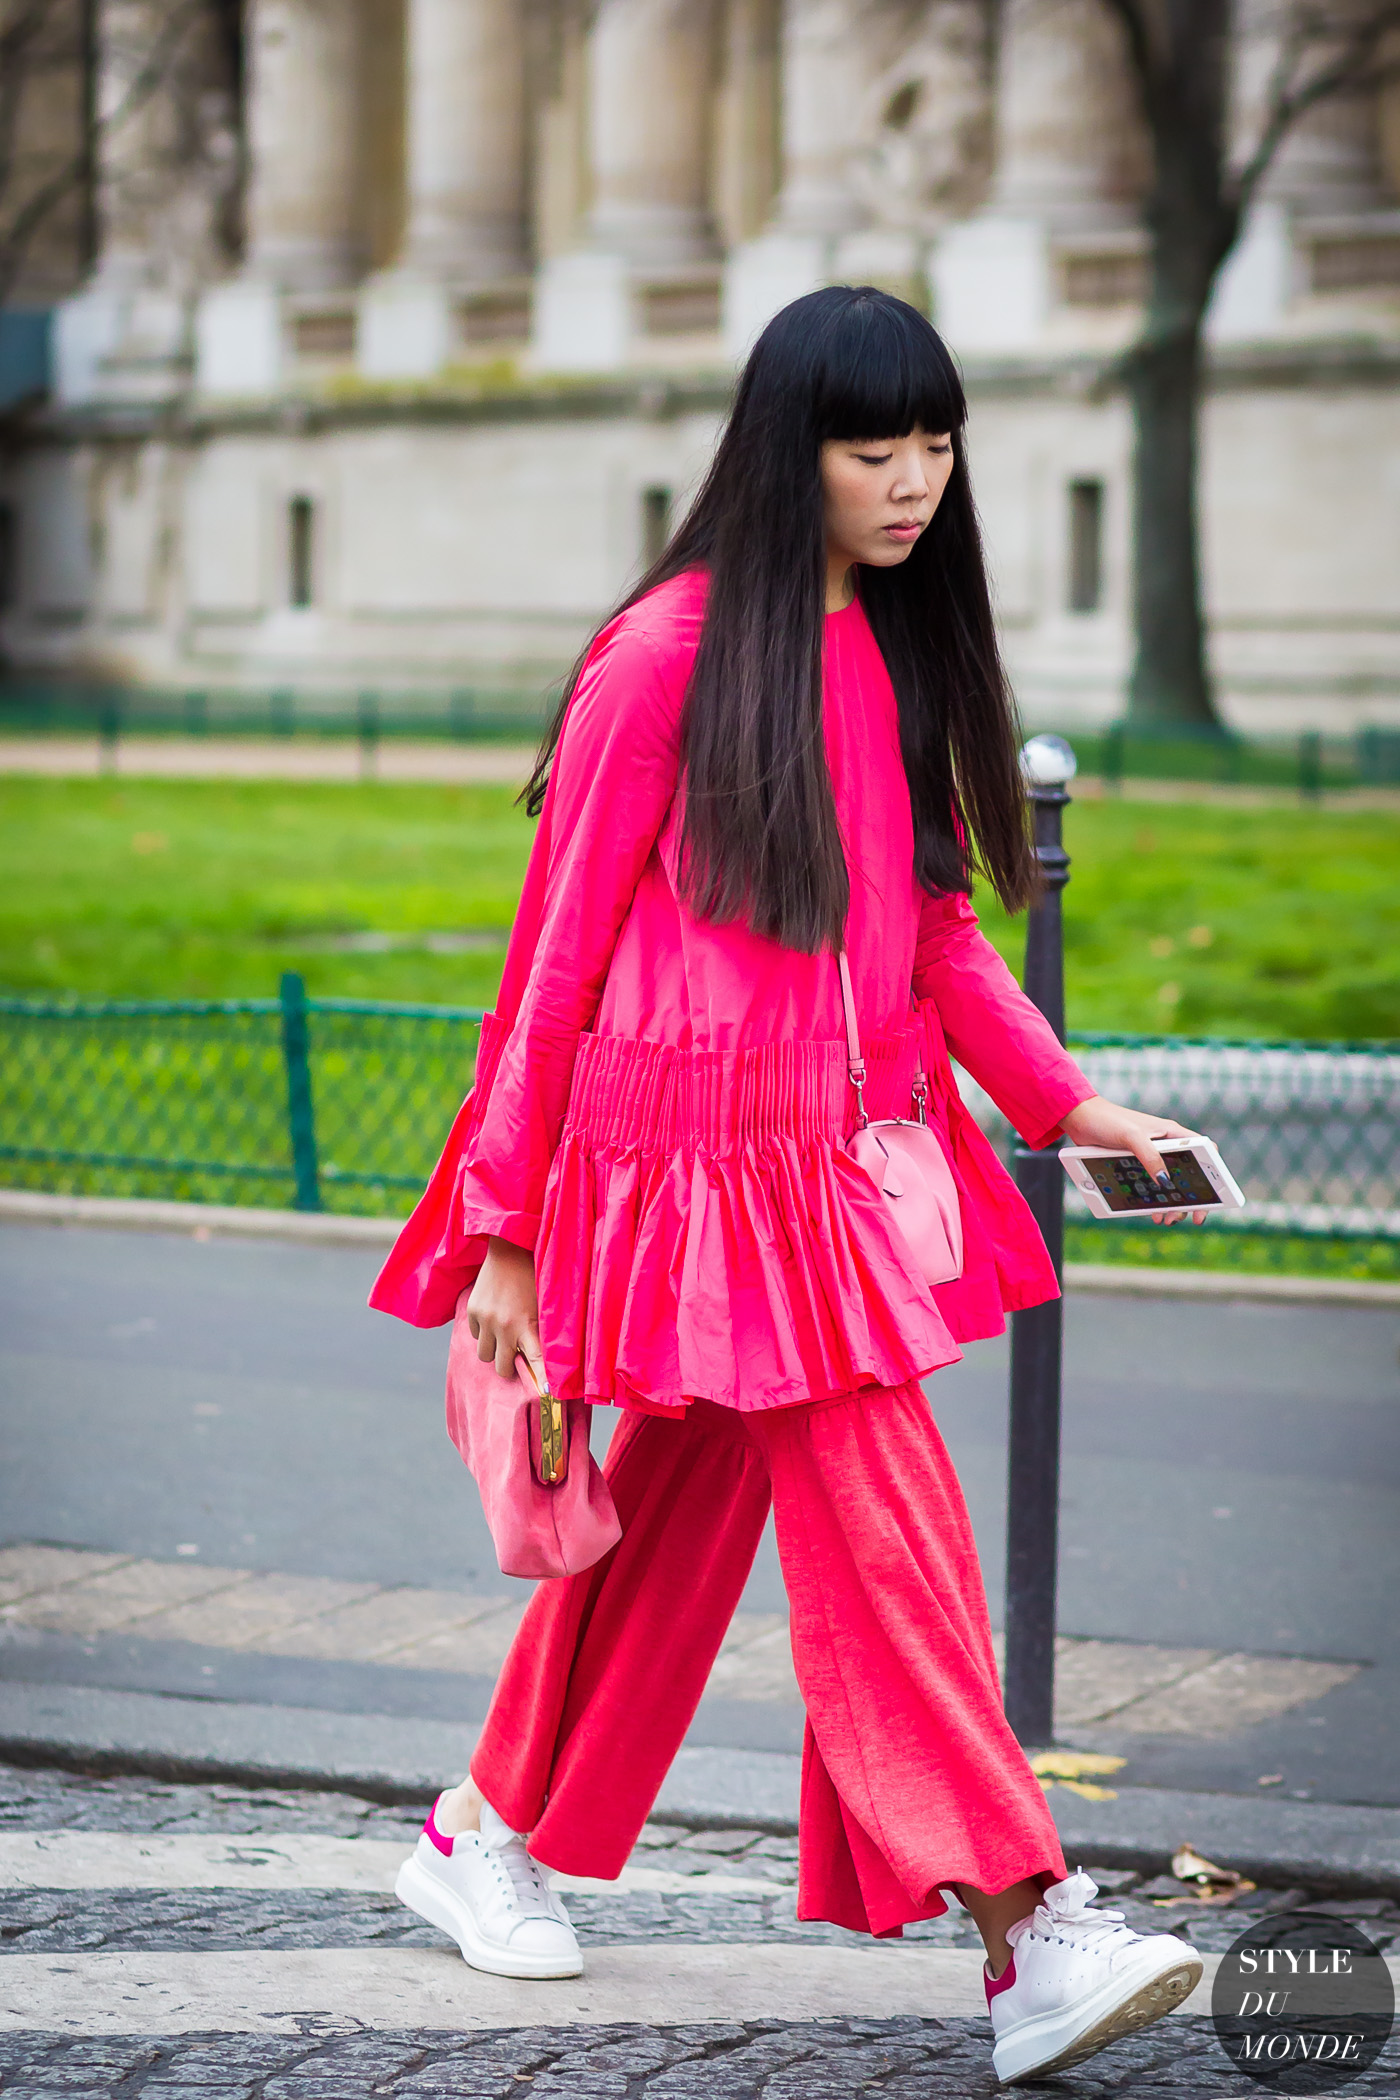 Susie Lau Susie Bubble Street Style Street Fashion Streetsnaps by STYLEDUMONDE Street Style Fashion Photography